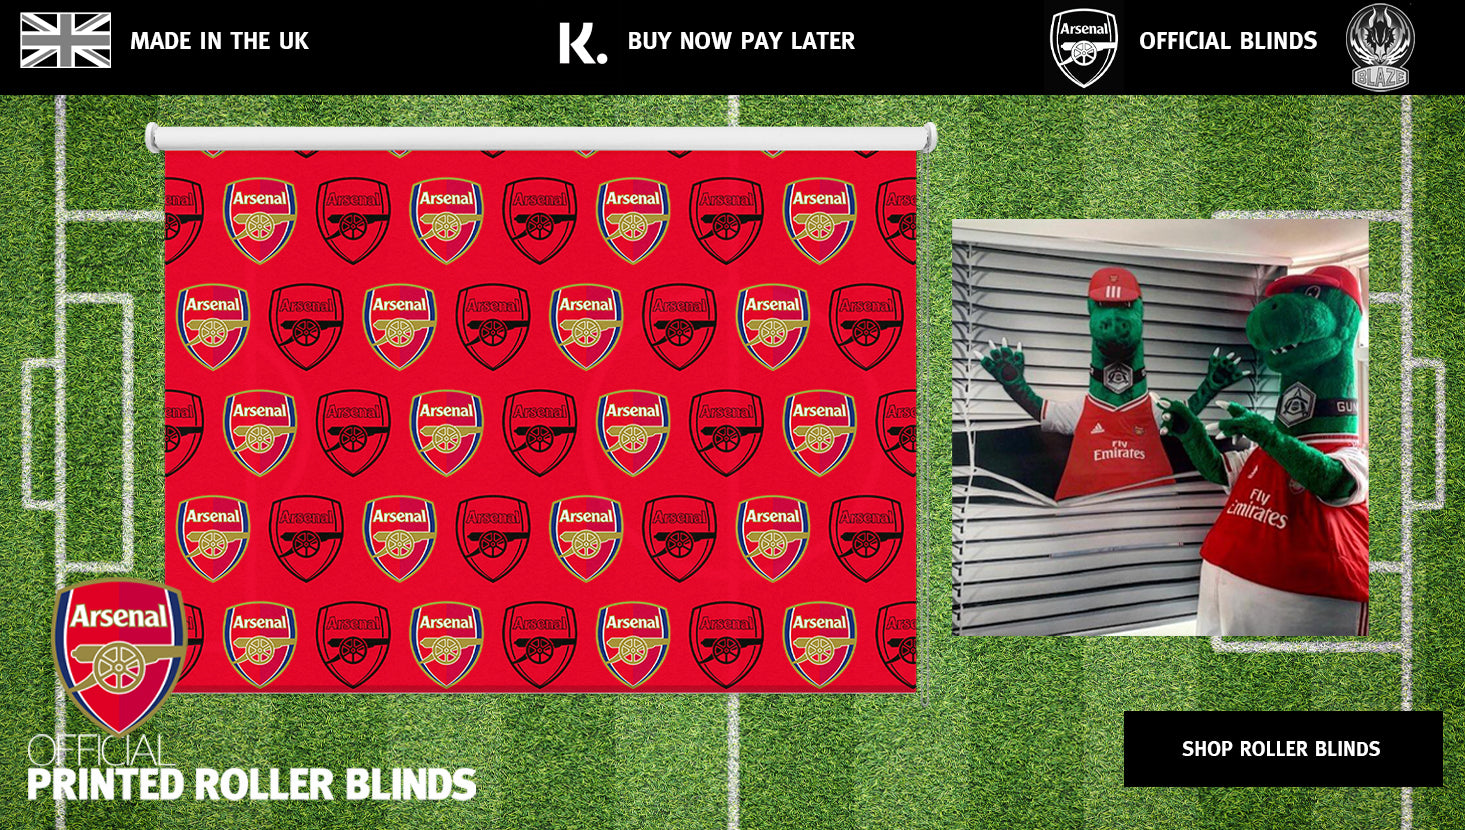 SELF ADHESIVE WALL MURALS FOR YOUR HOME OR BUSINESS